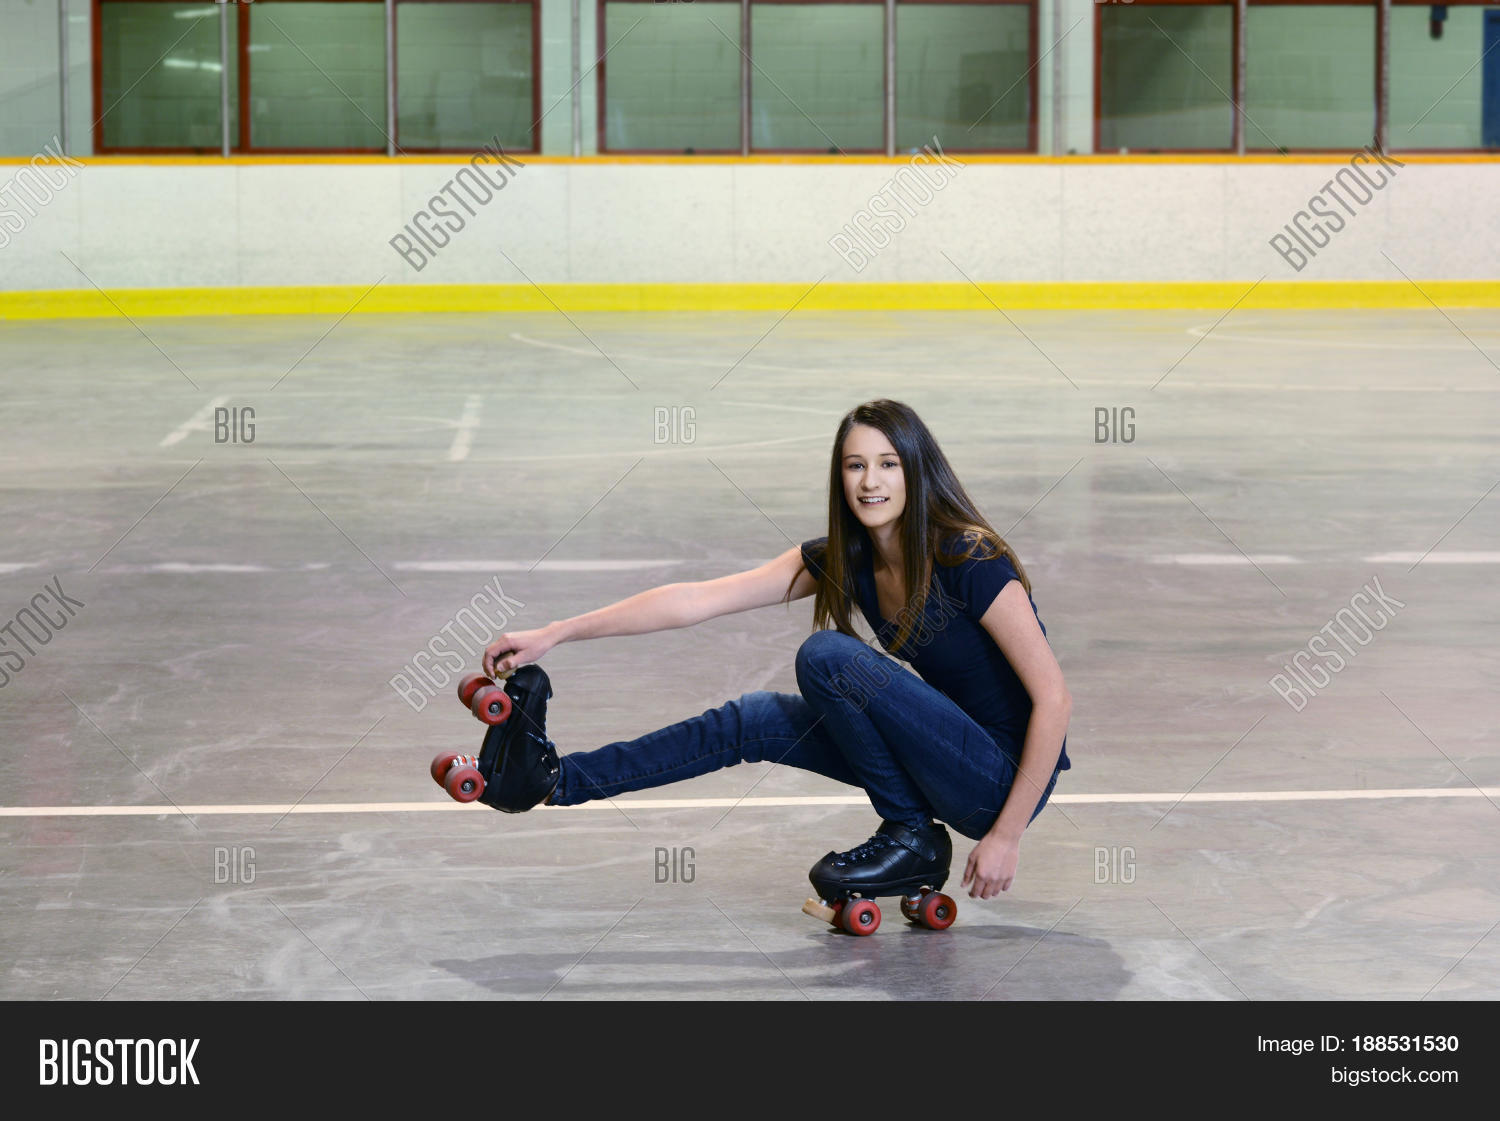 Gujrati girl xxx